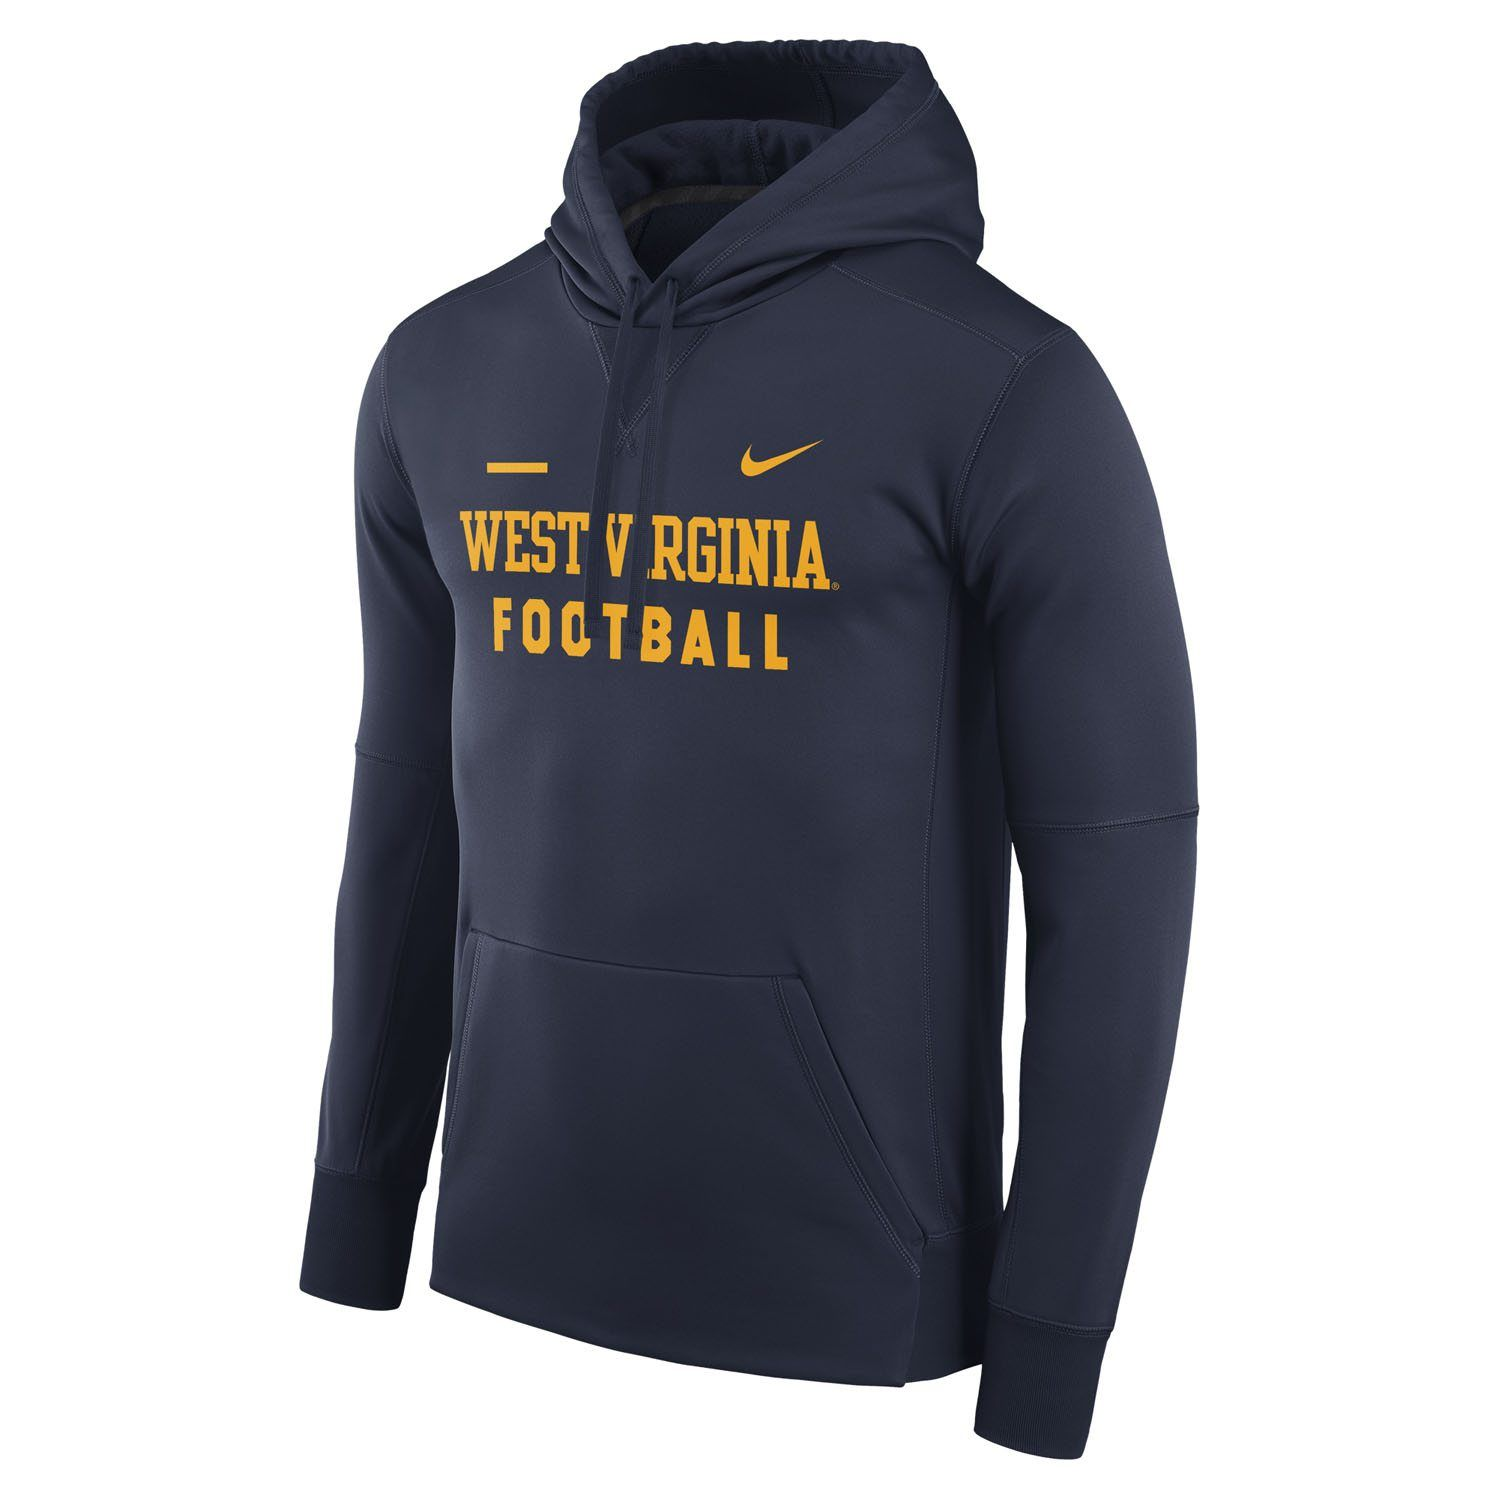 c42e106a115c Show your love of West Virginia Football in our Therma-FIT hoodie from Nike  Team Sports